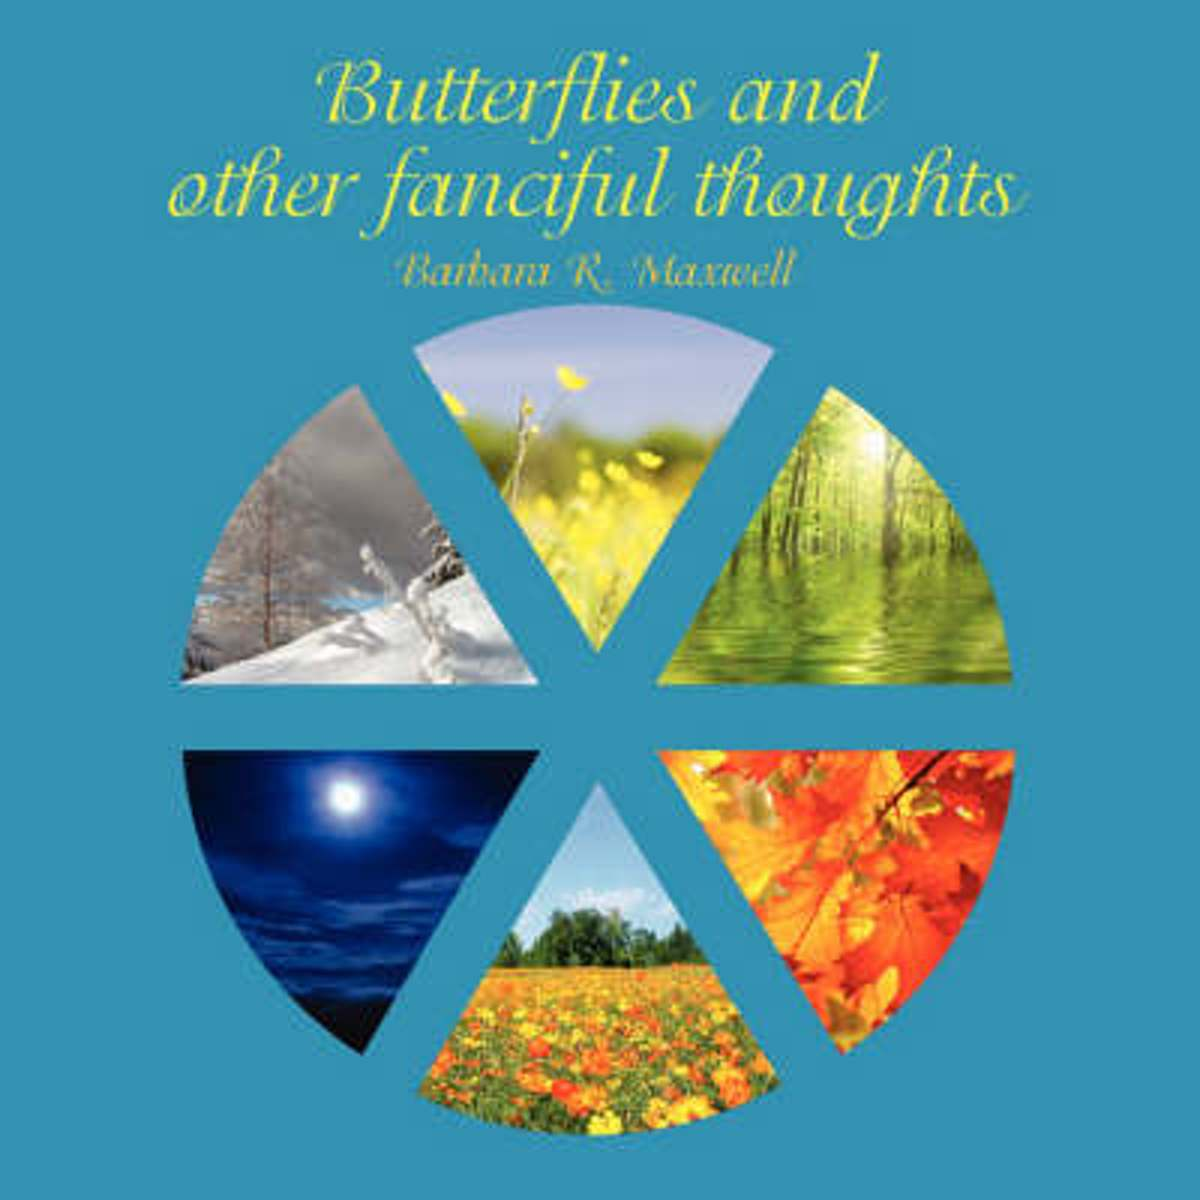 Butterflies and Other Fanciful Thoughts